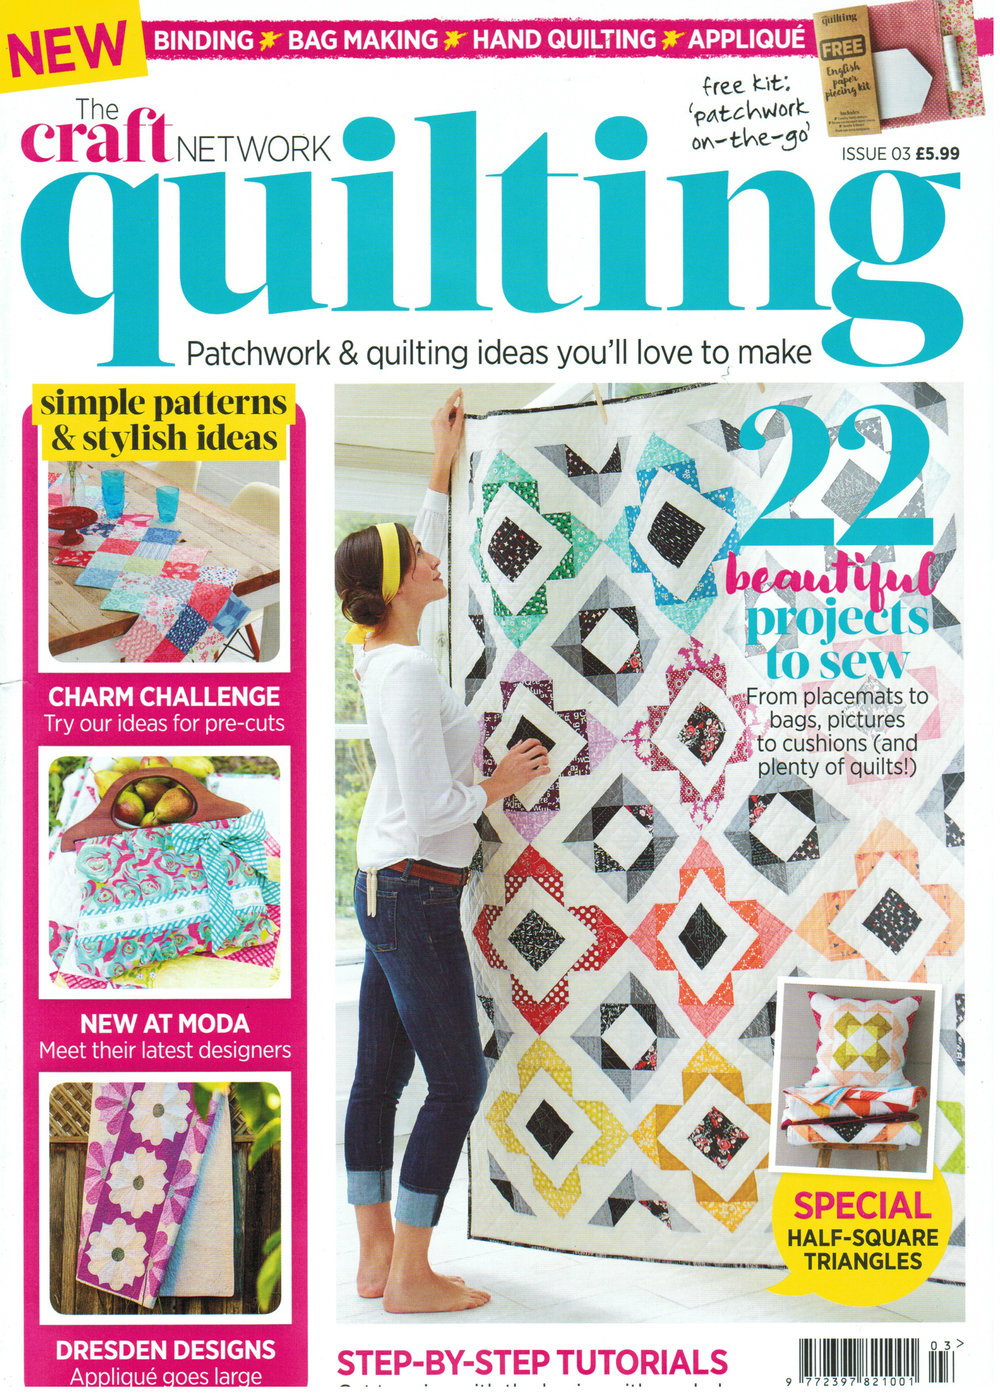 Mag Cover Craft Network Quilting.jpg